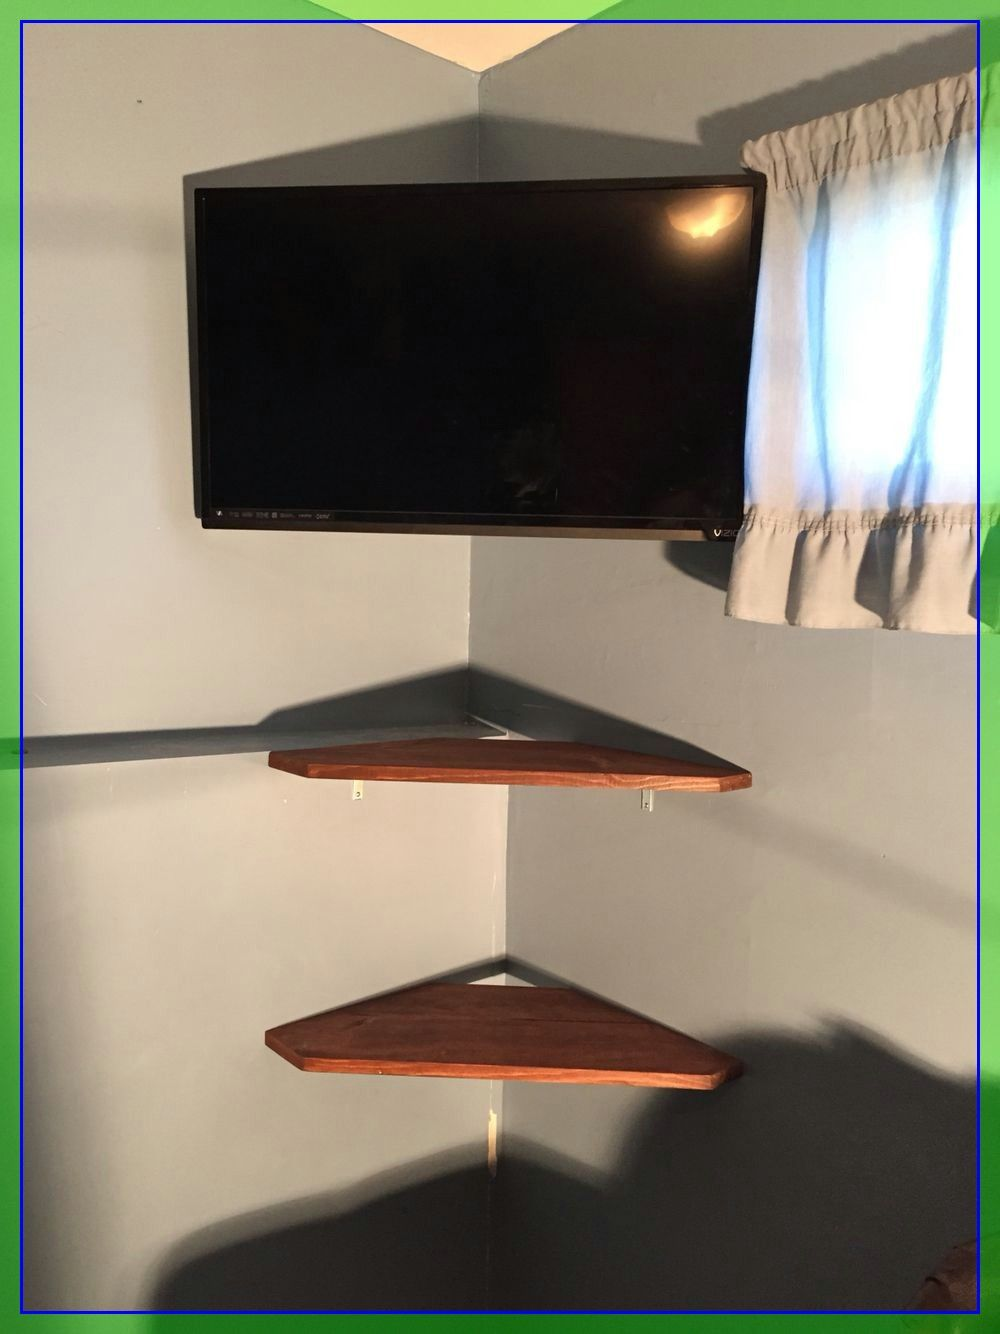 33 Reference Of Corner Stand For Led Tv In India In 2020 Wall Mounted Tv Corner Tv Mount Wall Tv Stand